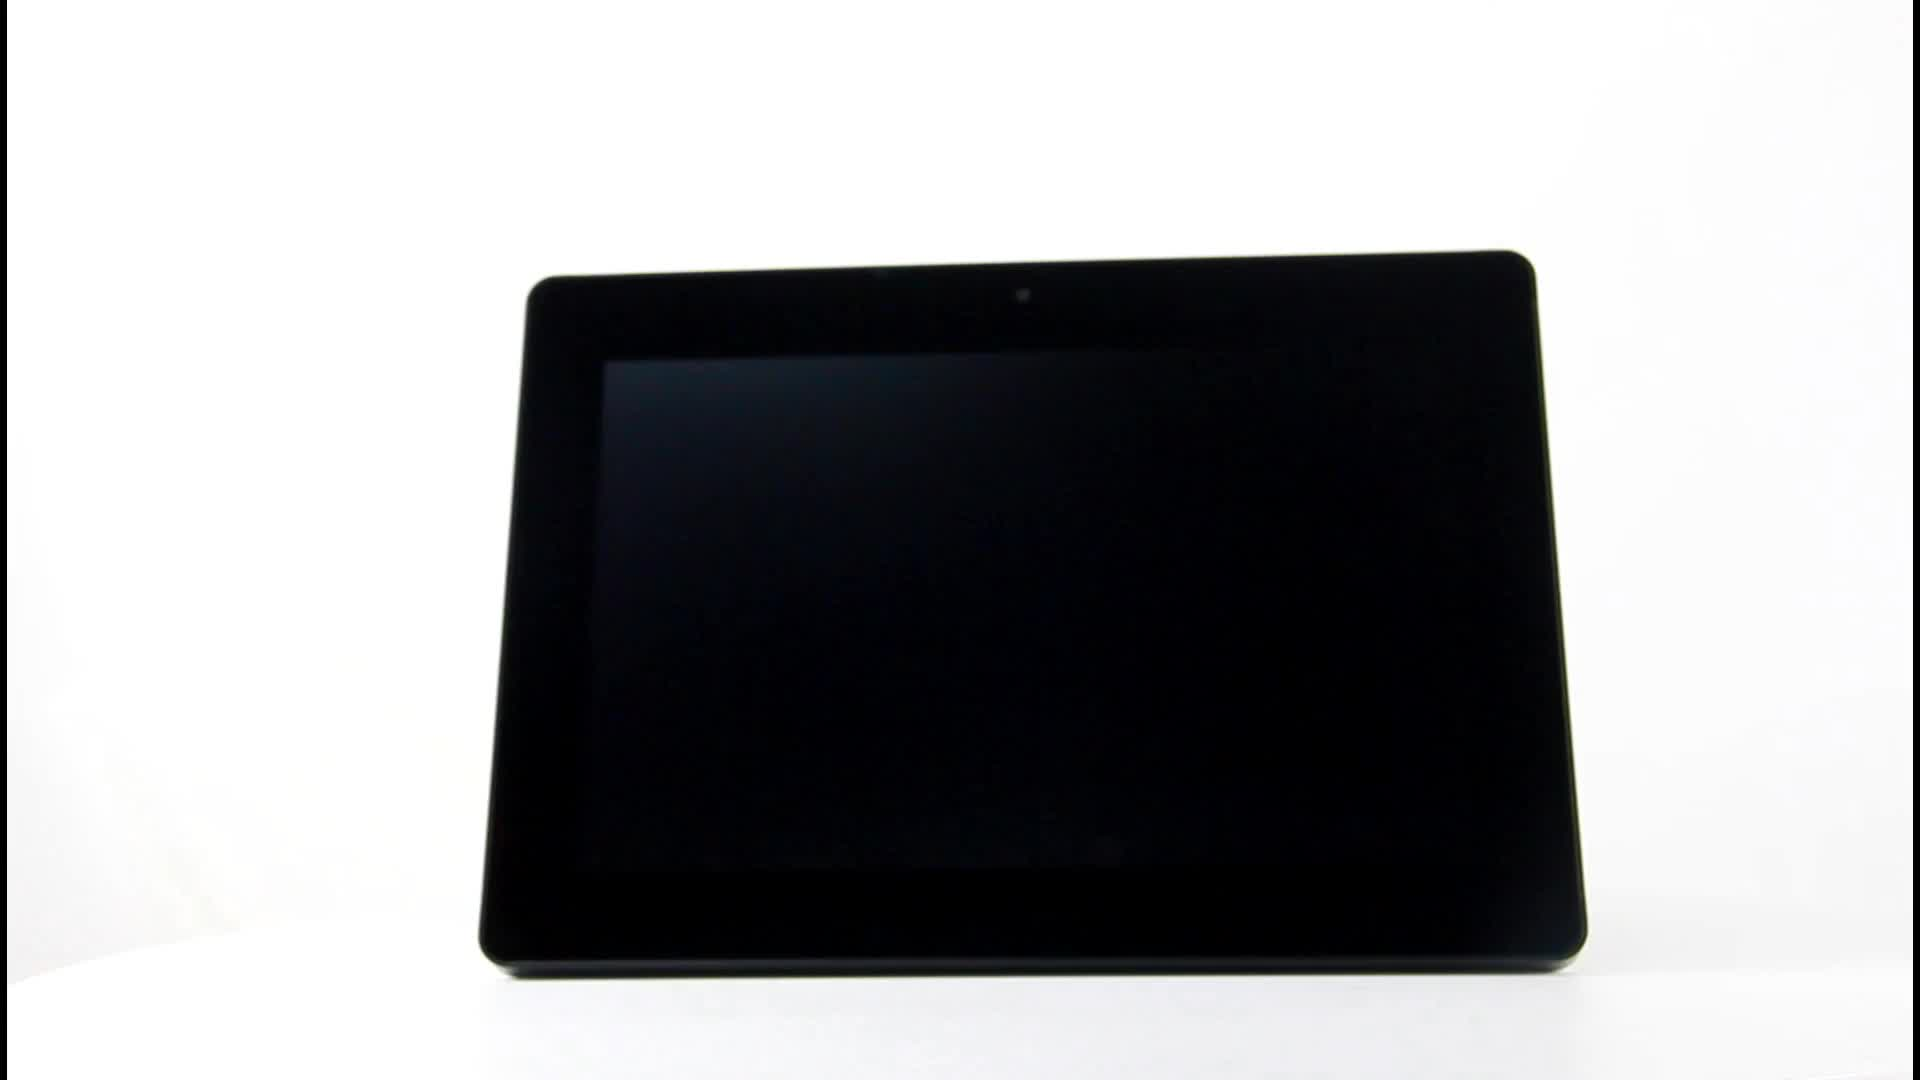 Professional Manufacture a64 1+8g wifi poe industrial tablet 13.3 inch with touch for pos hotel smart home